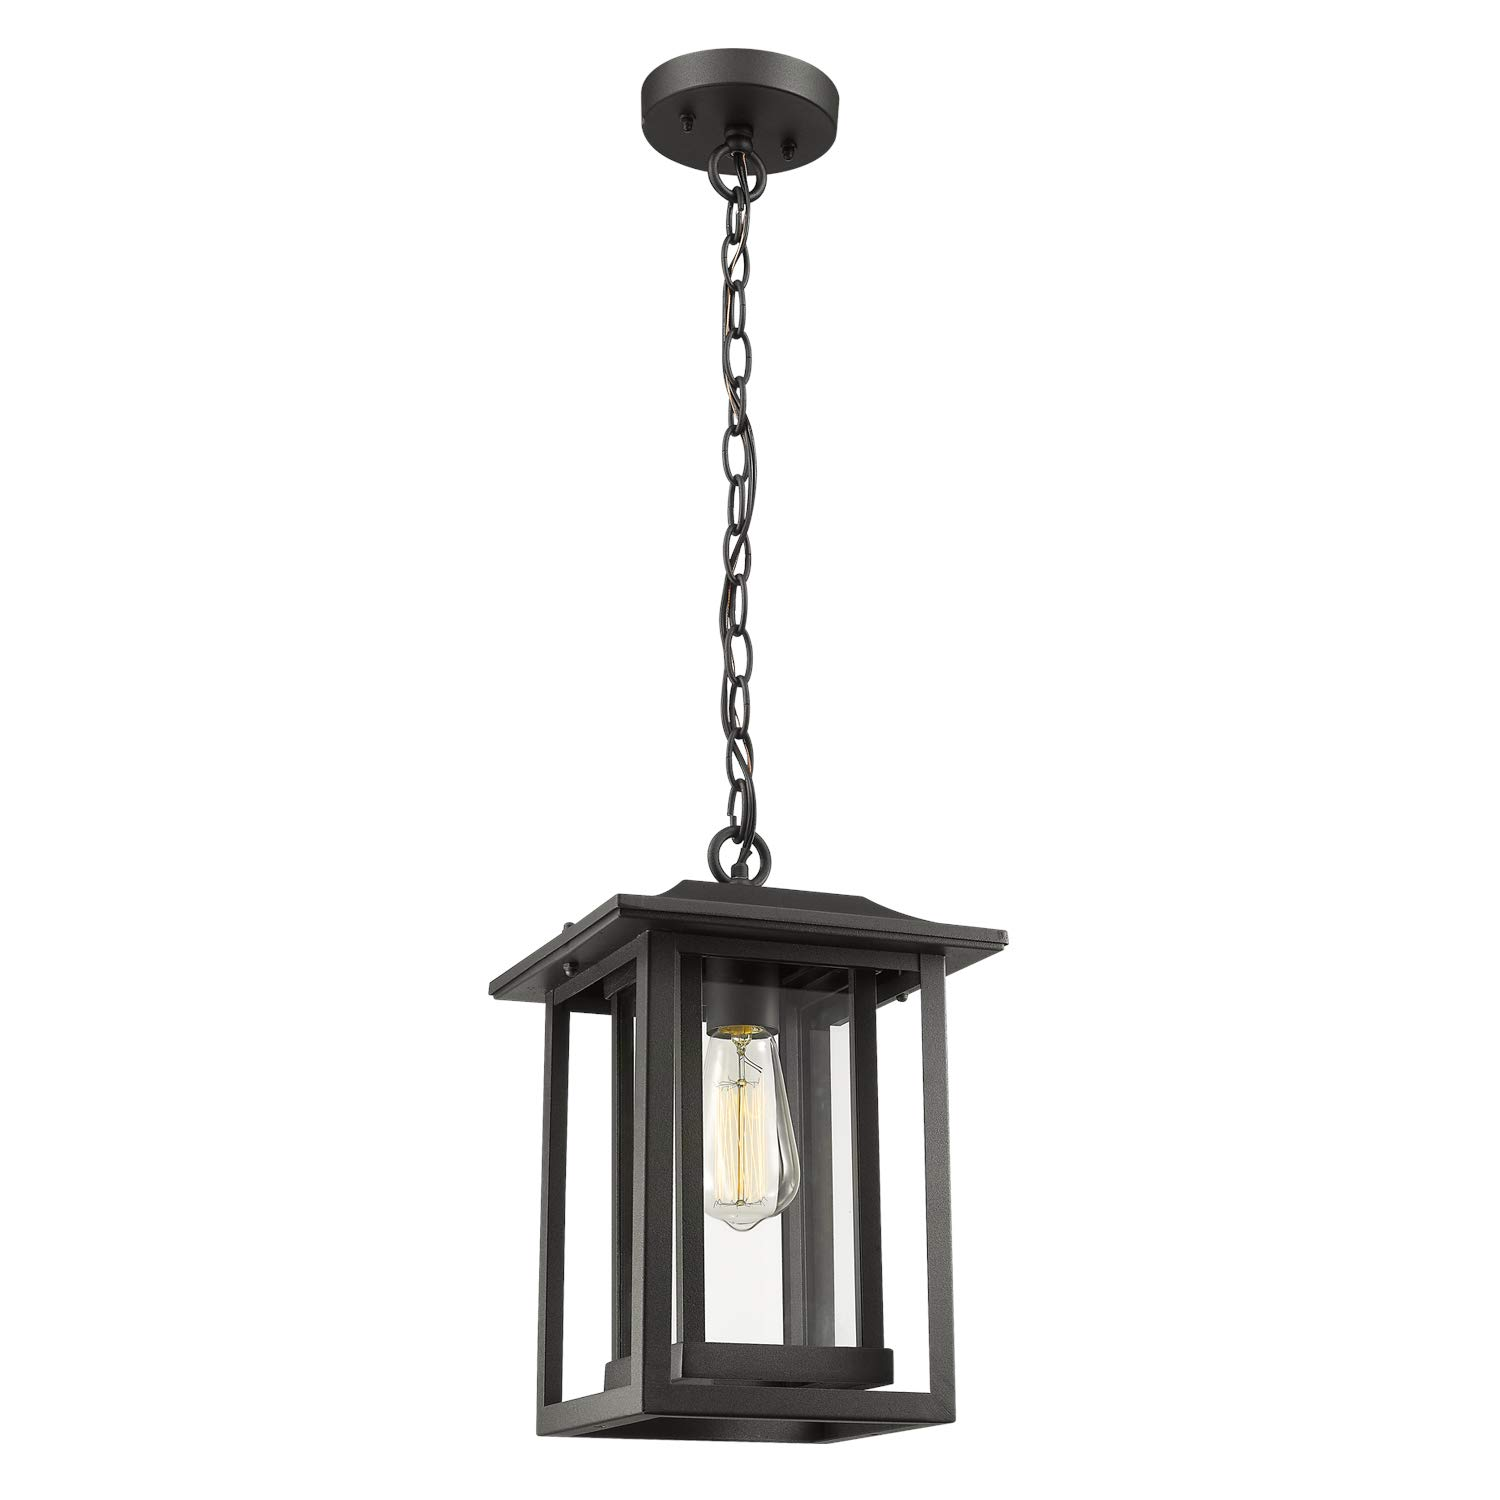 Outdoor Pendant Light Beionxii Large Exterior Hanging Lantern Matte Black with Clear Glass Panel Shade, Pendant Chain Adjustable